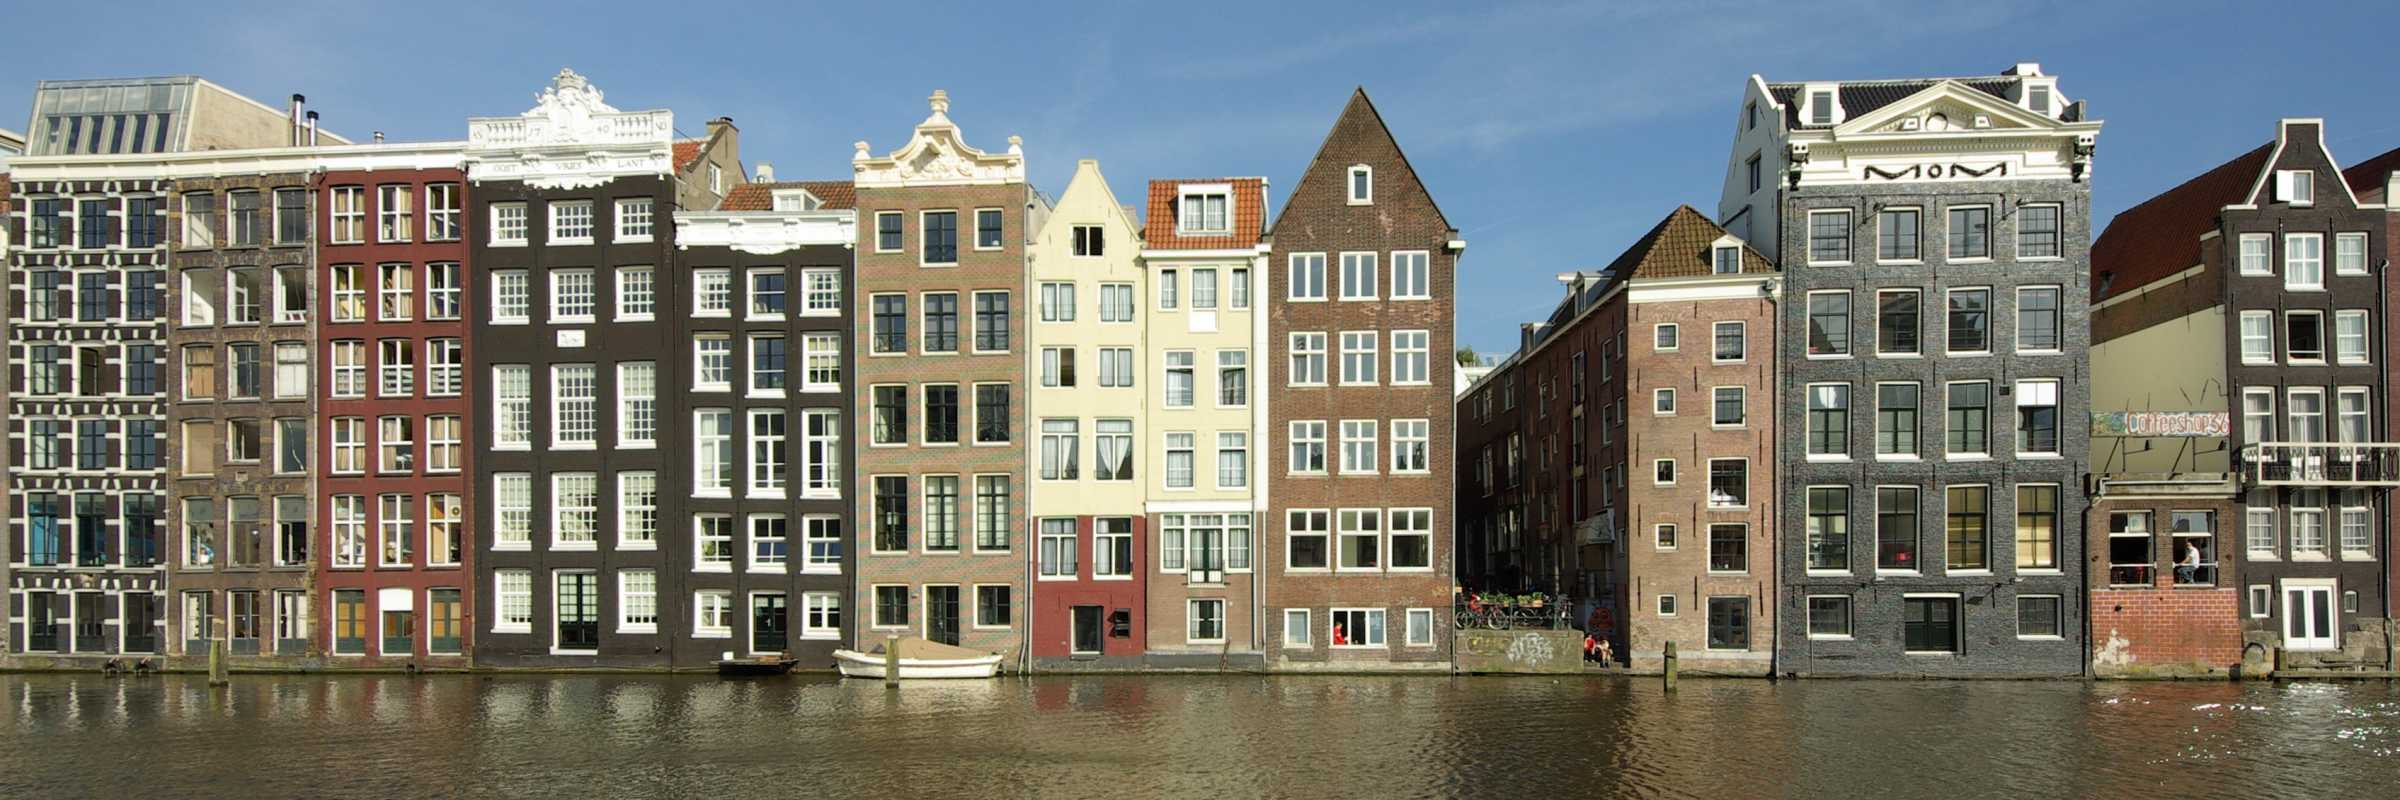 Image of Amsterdam on canal